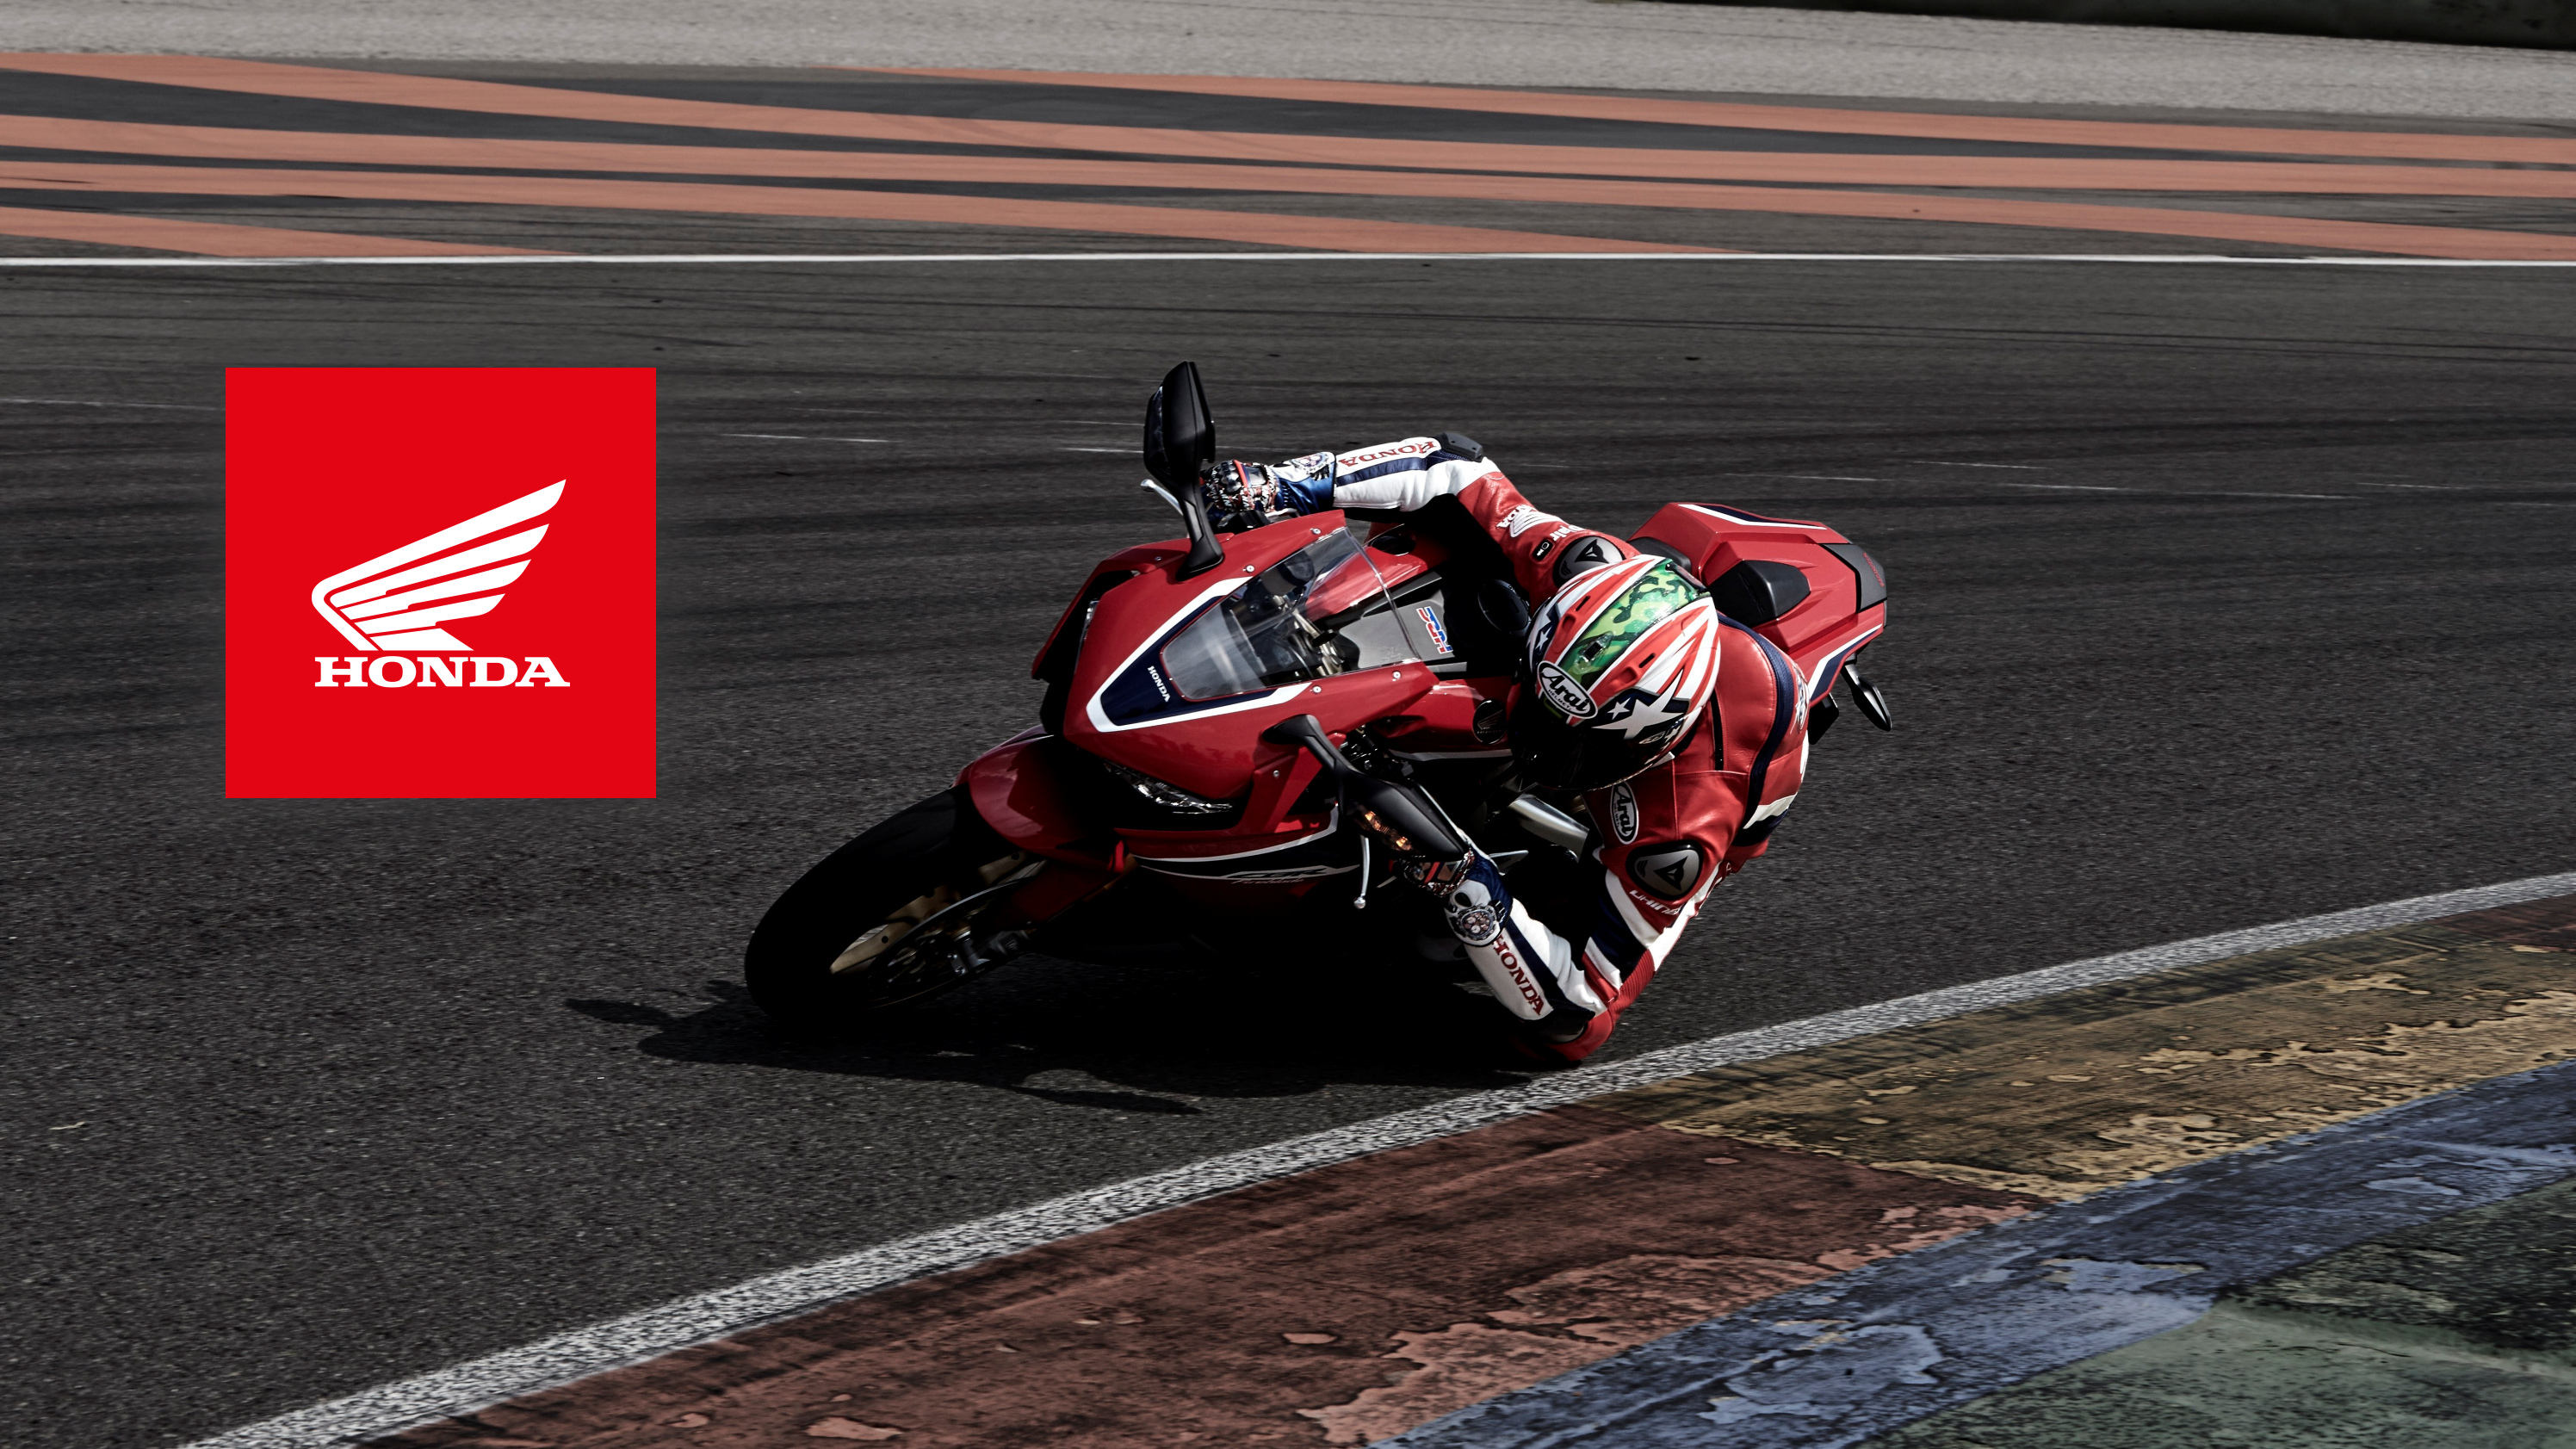 2017 - 2019 Honda CBR1000RR SP | Top Speed